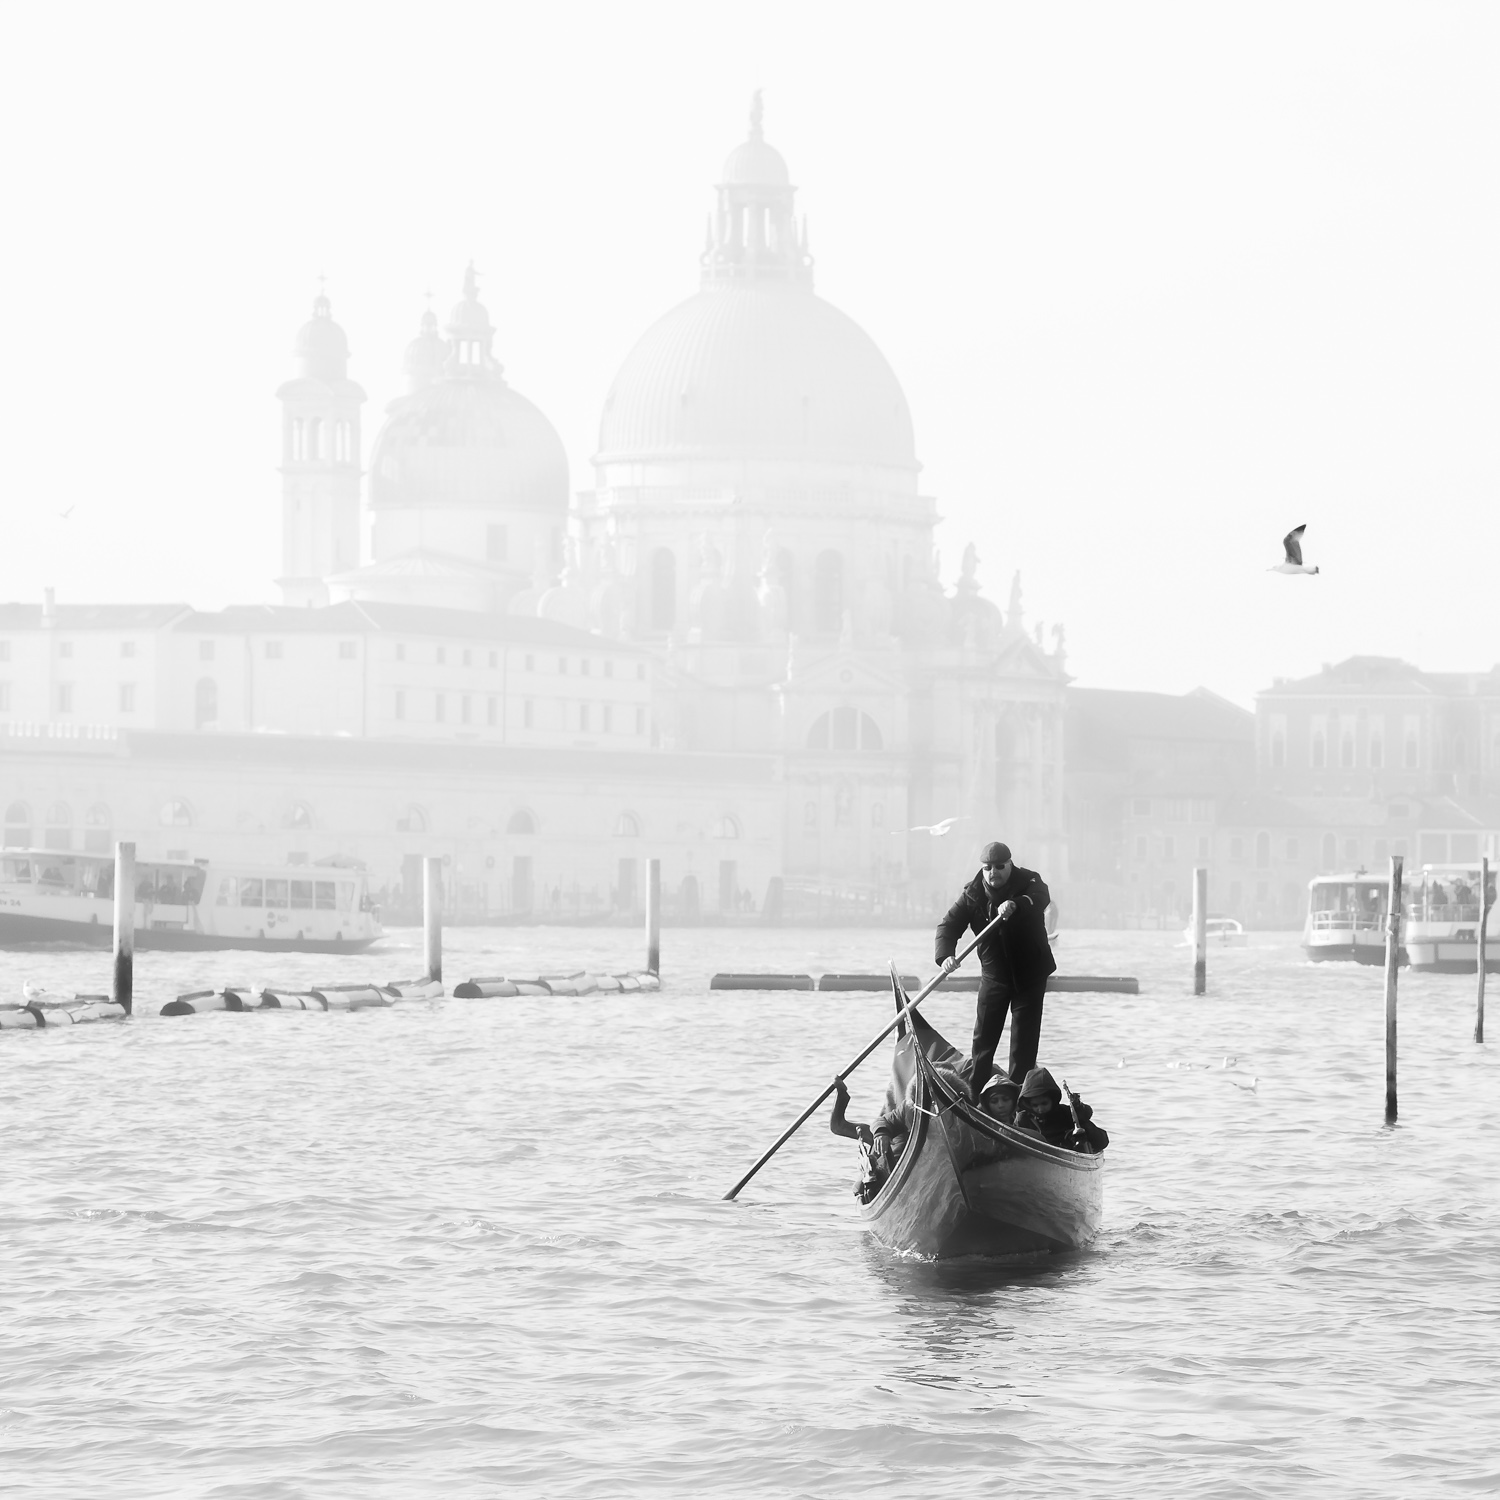 Venice gondolier in action at Grand Canal